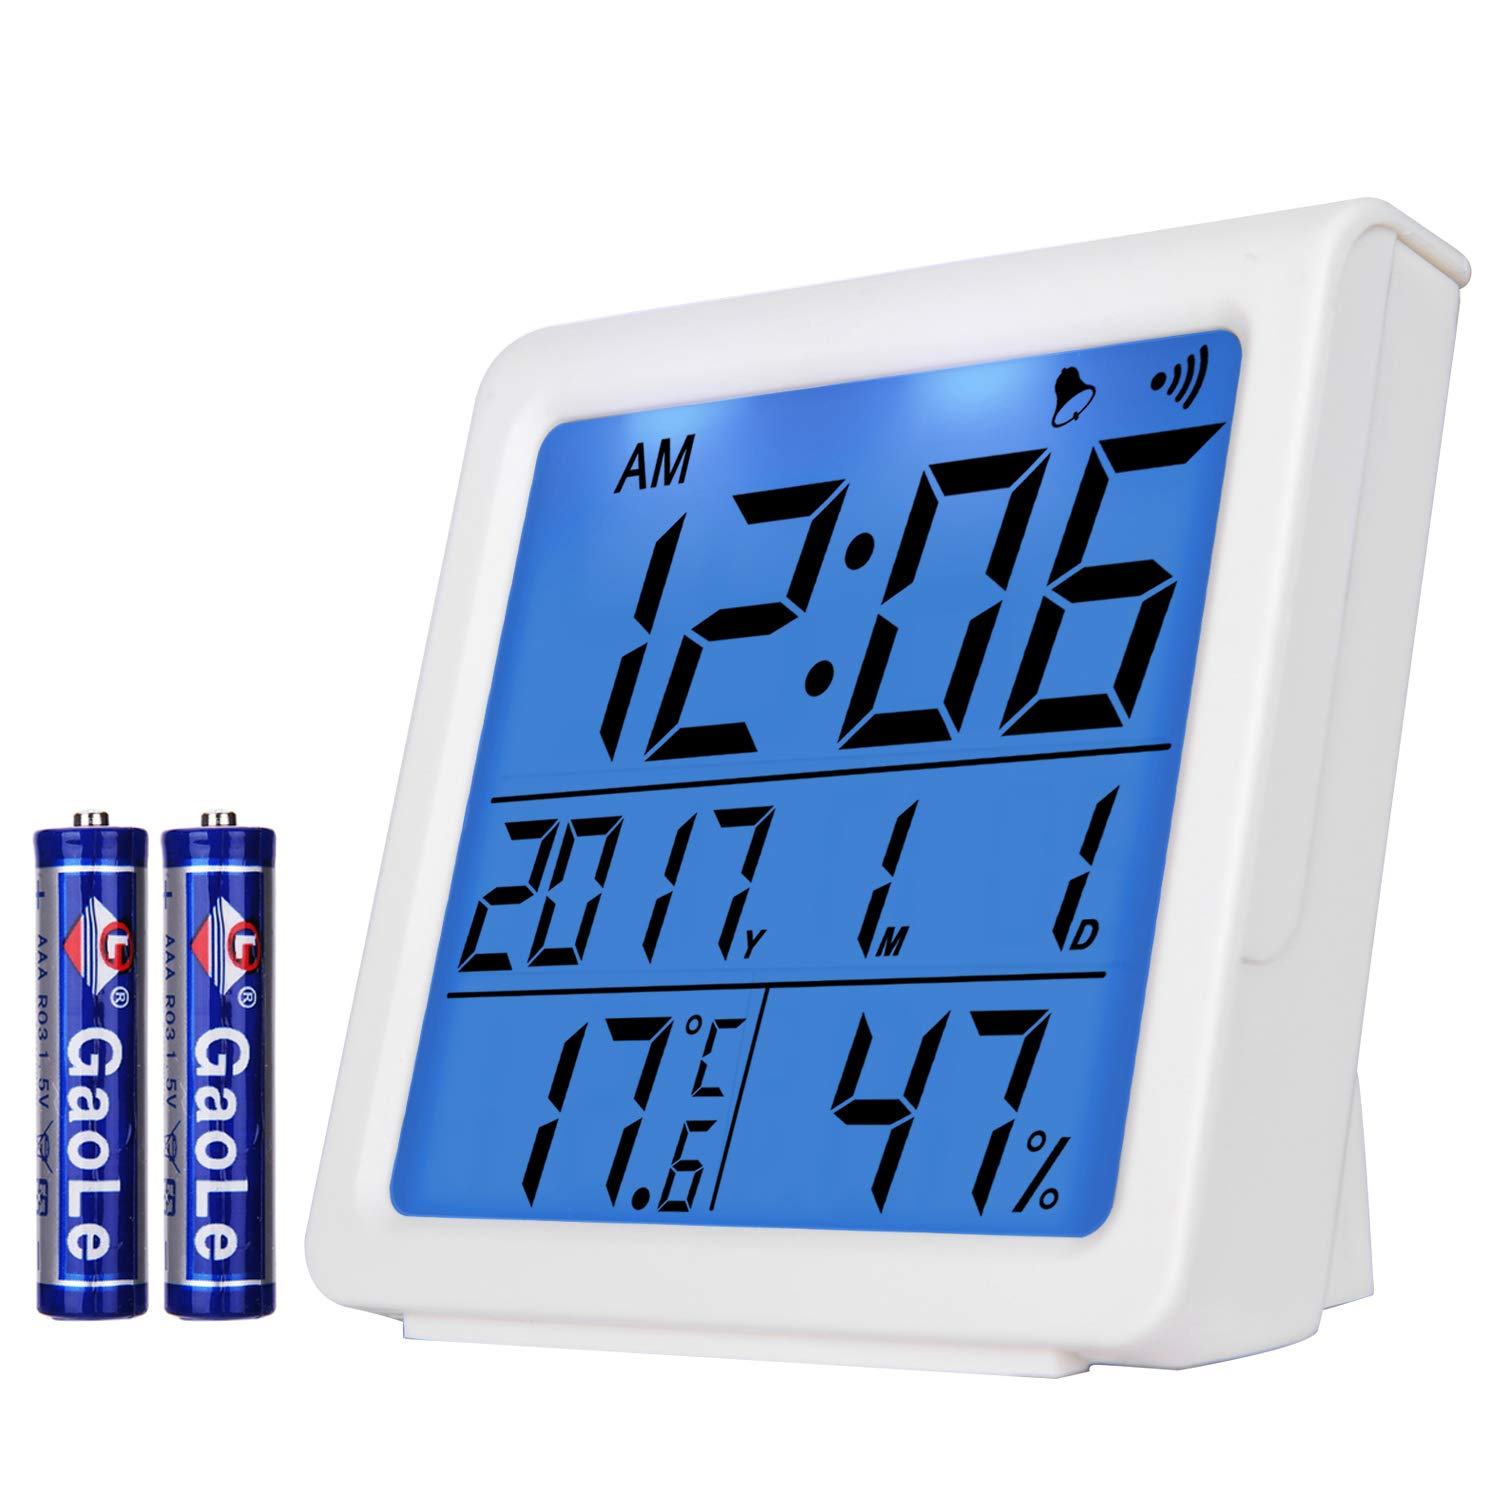 Yesurprise Digital Hygrometer Indoor Thermometer Humidity Meter Monitor Temperature Gauge Alarm Clock Smart Timer with Touchscreen, Backlight and Table Standing Battery Included - White